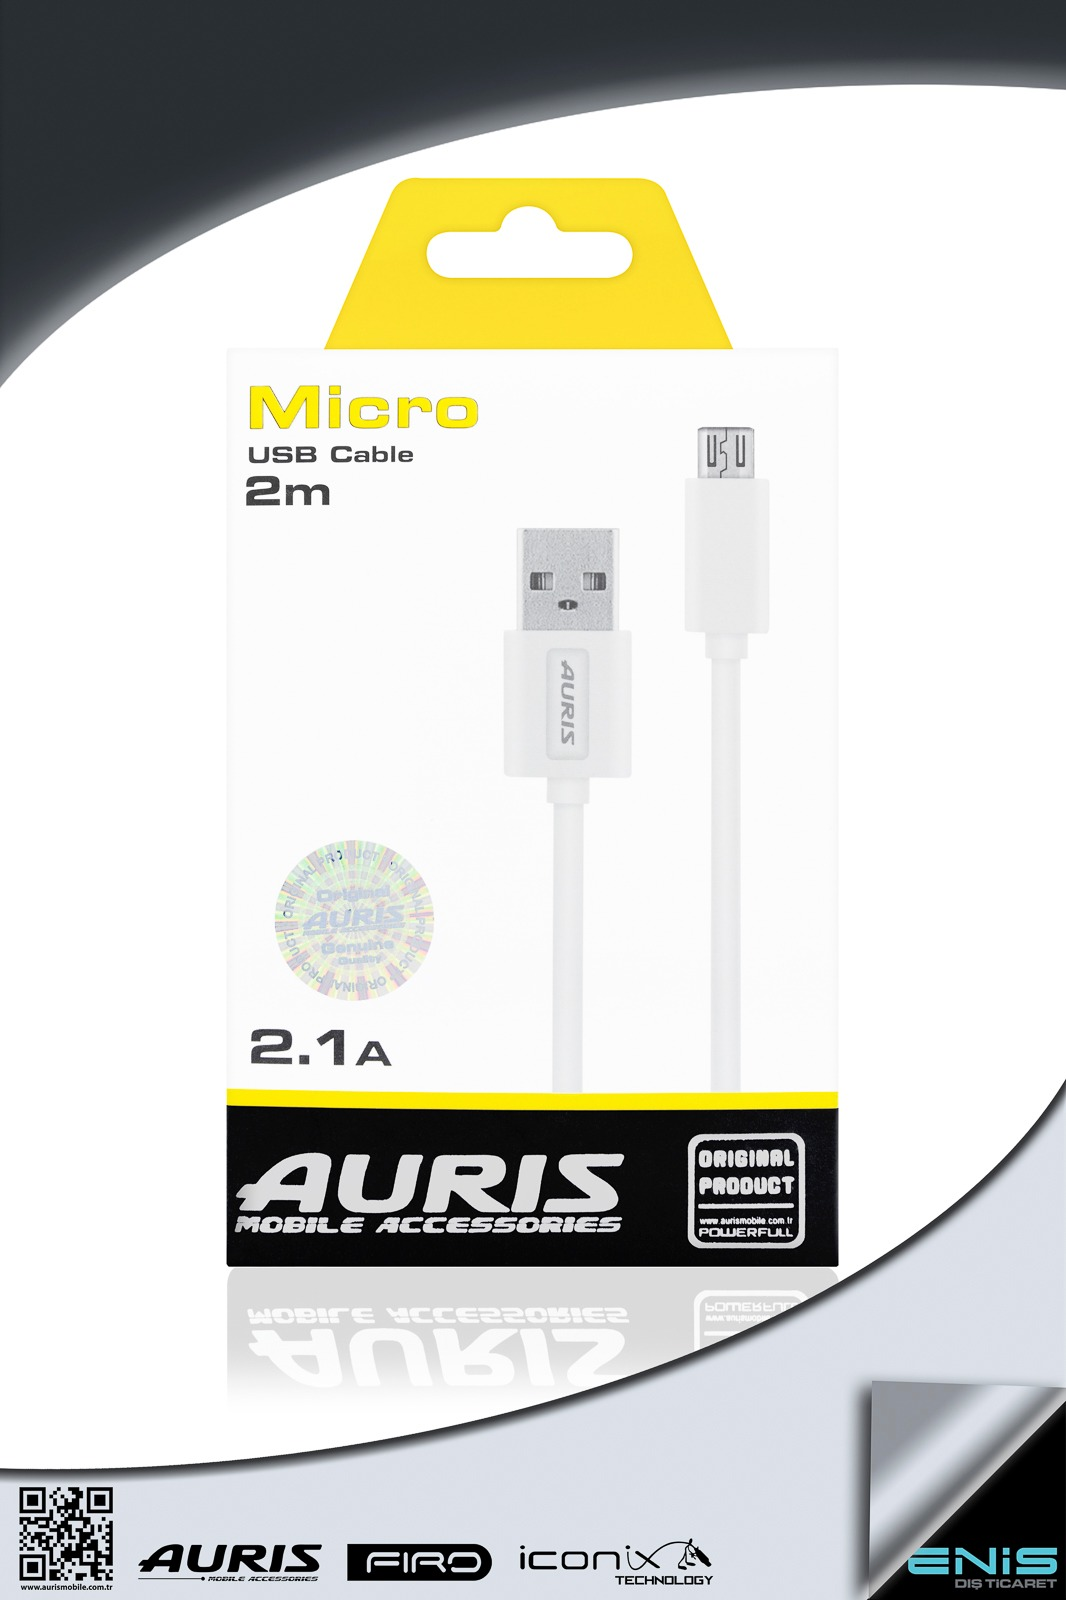 MICRO USB CABLE 2M 2.1A